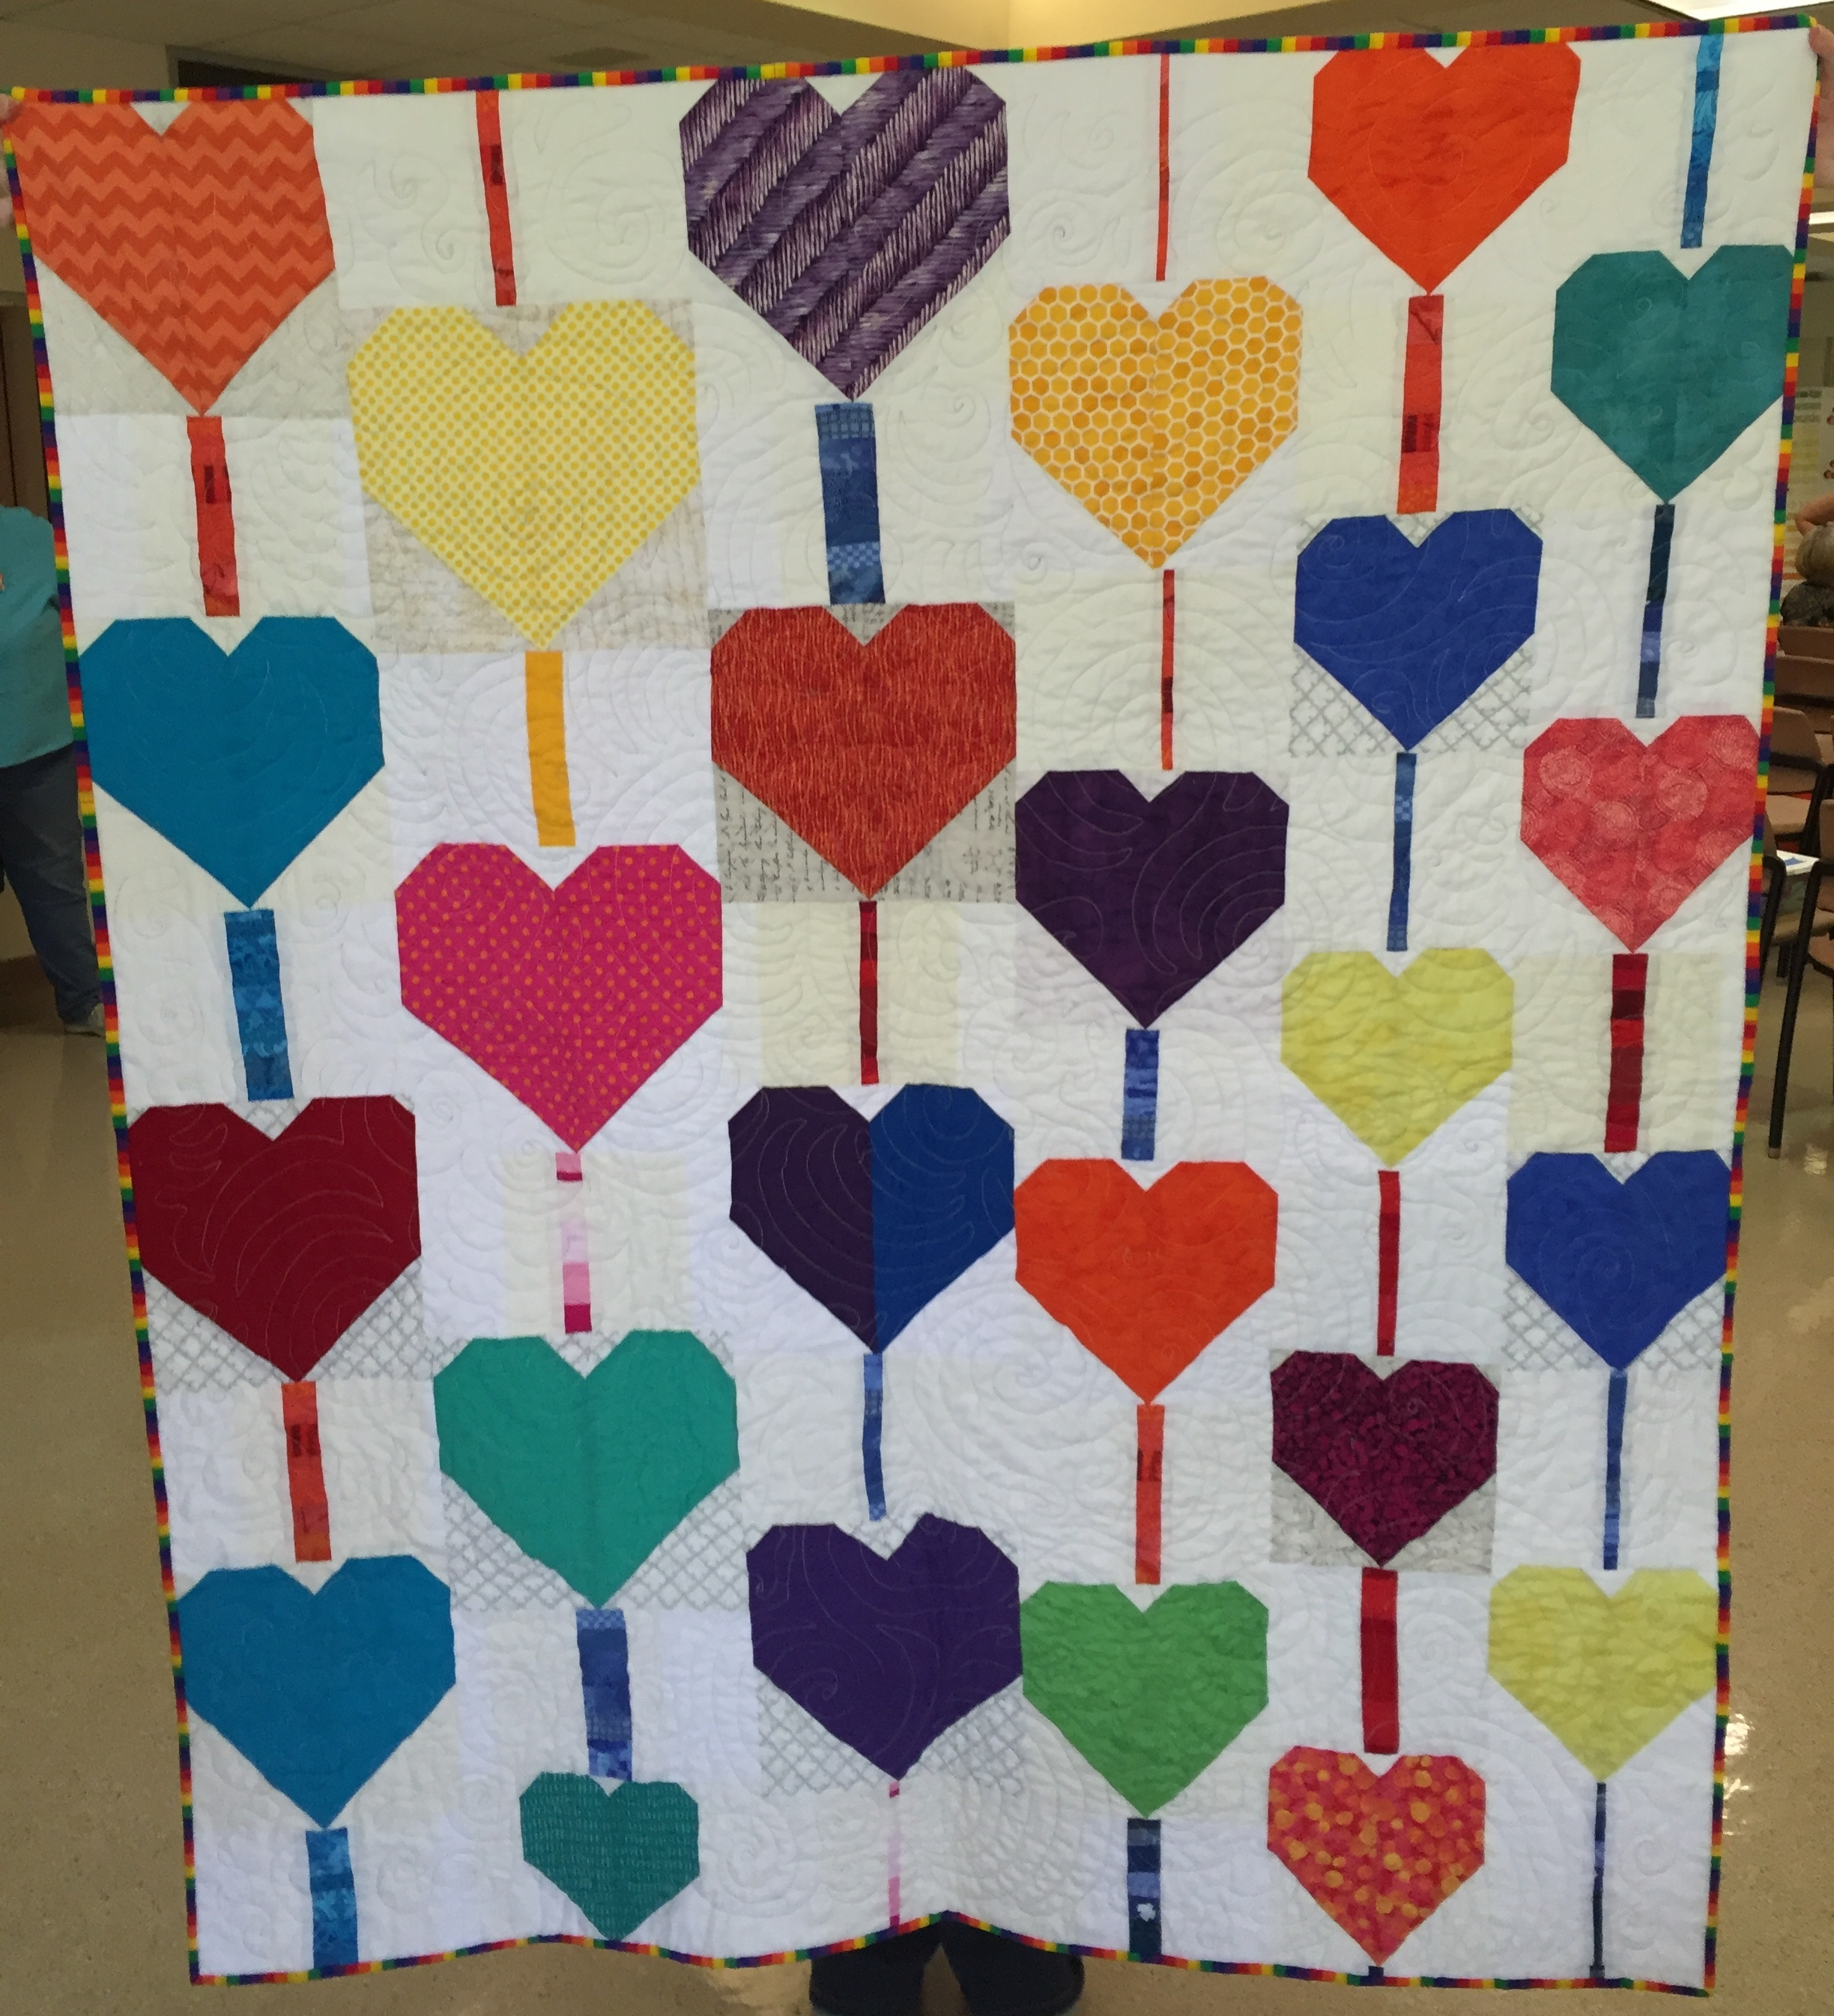 Pieced by Charlotte Noll, quilted by Patti Auten, binding by Kerrilyn O'Rourke